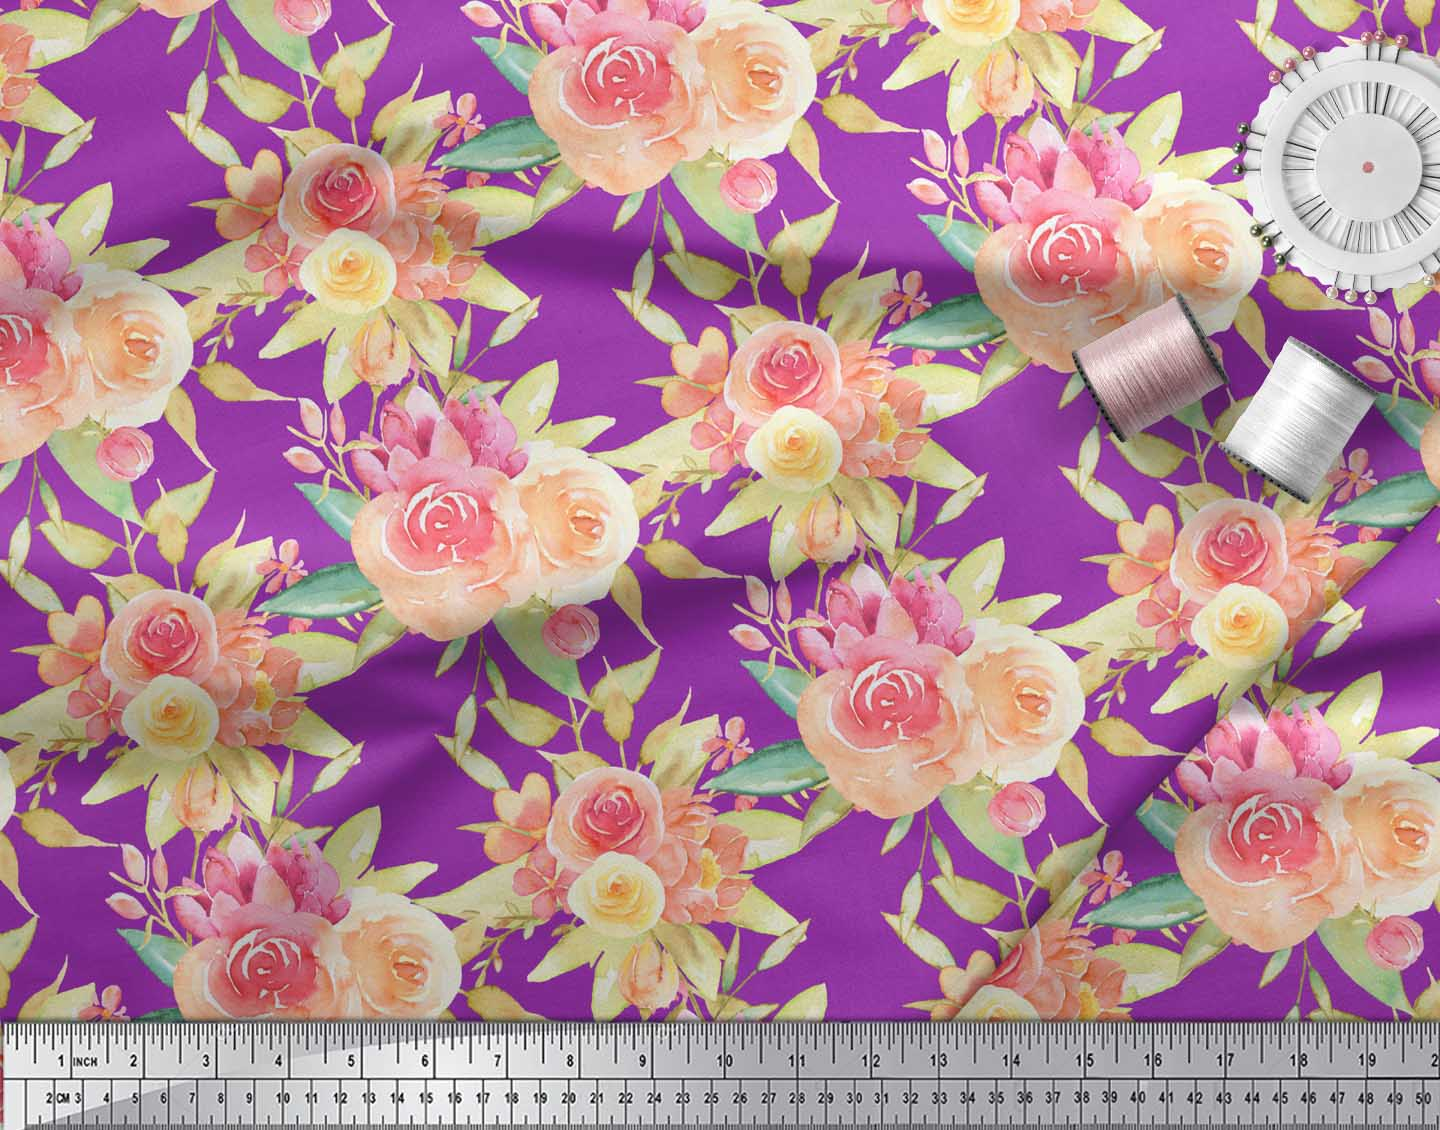 Soimoi-Purple-Cotton-Poplin-Fabric-Leaves-amp-Ranunculus-Floral-Print-Eyd thumbnail 4